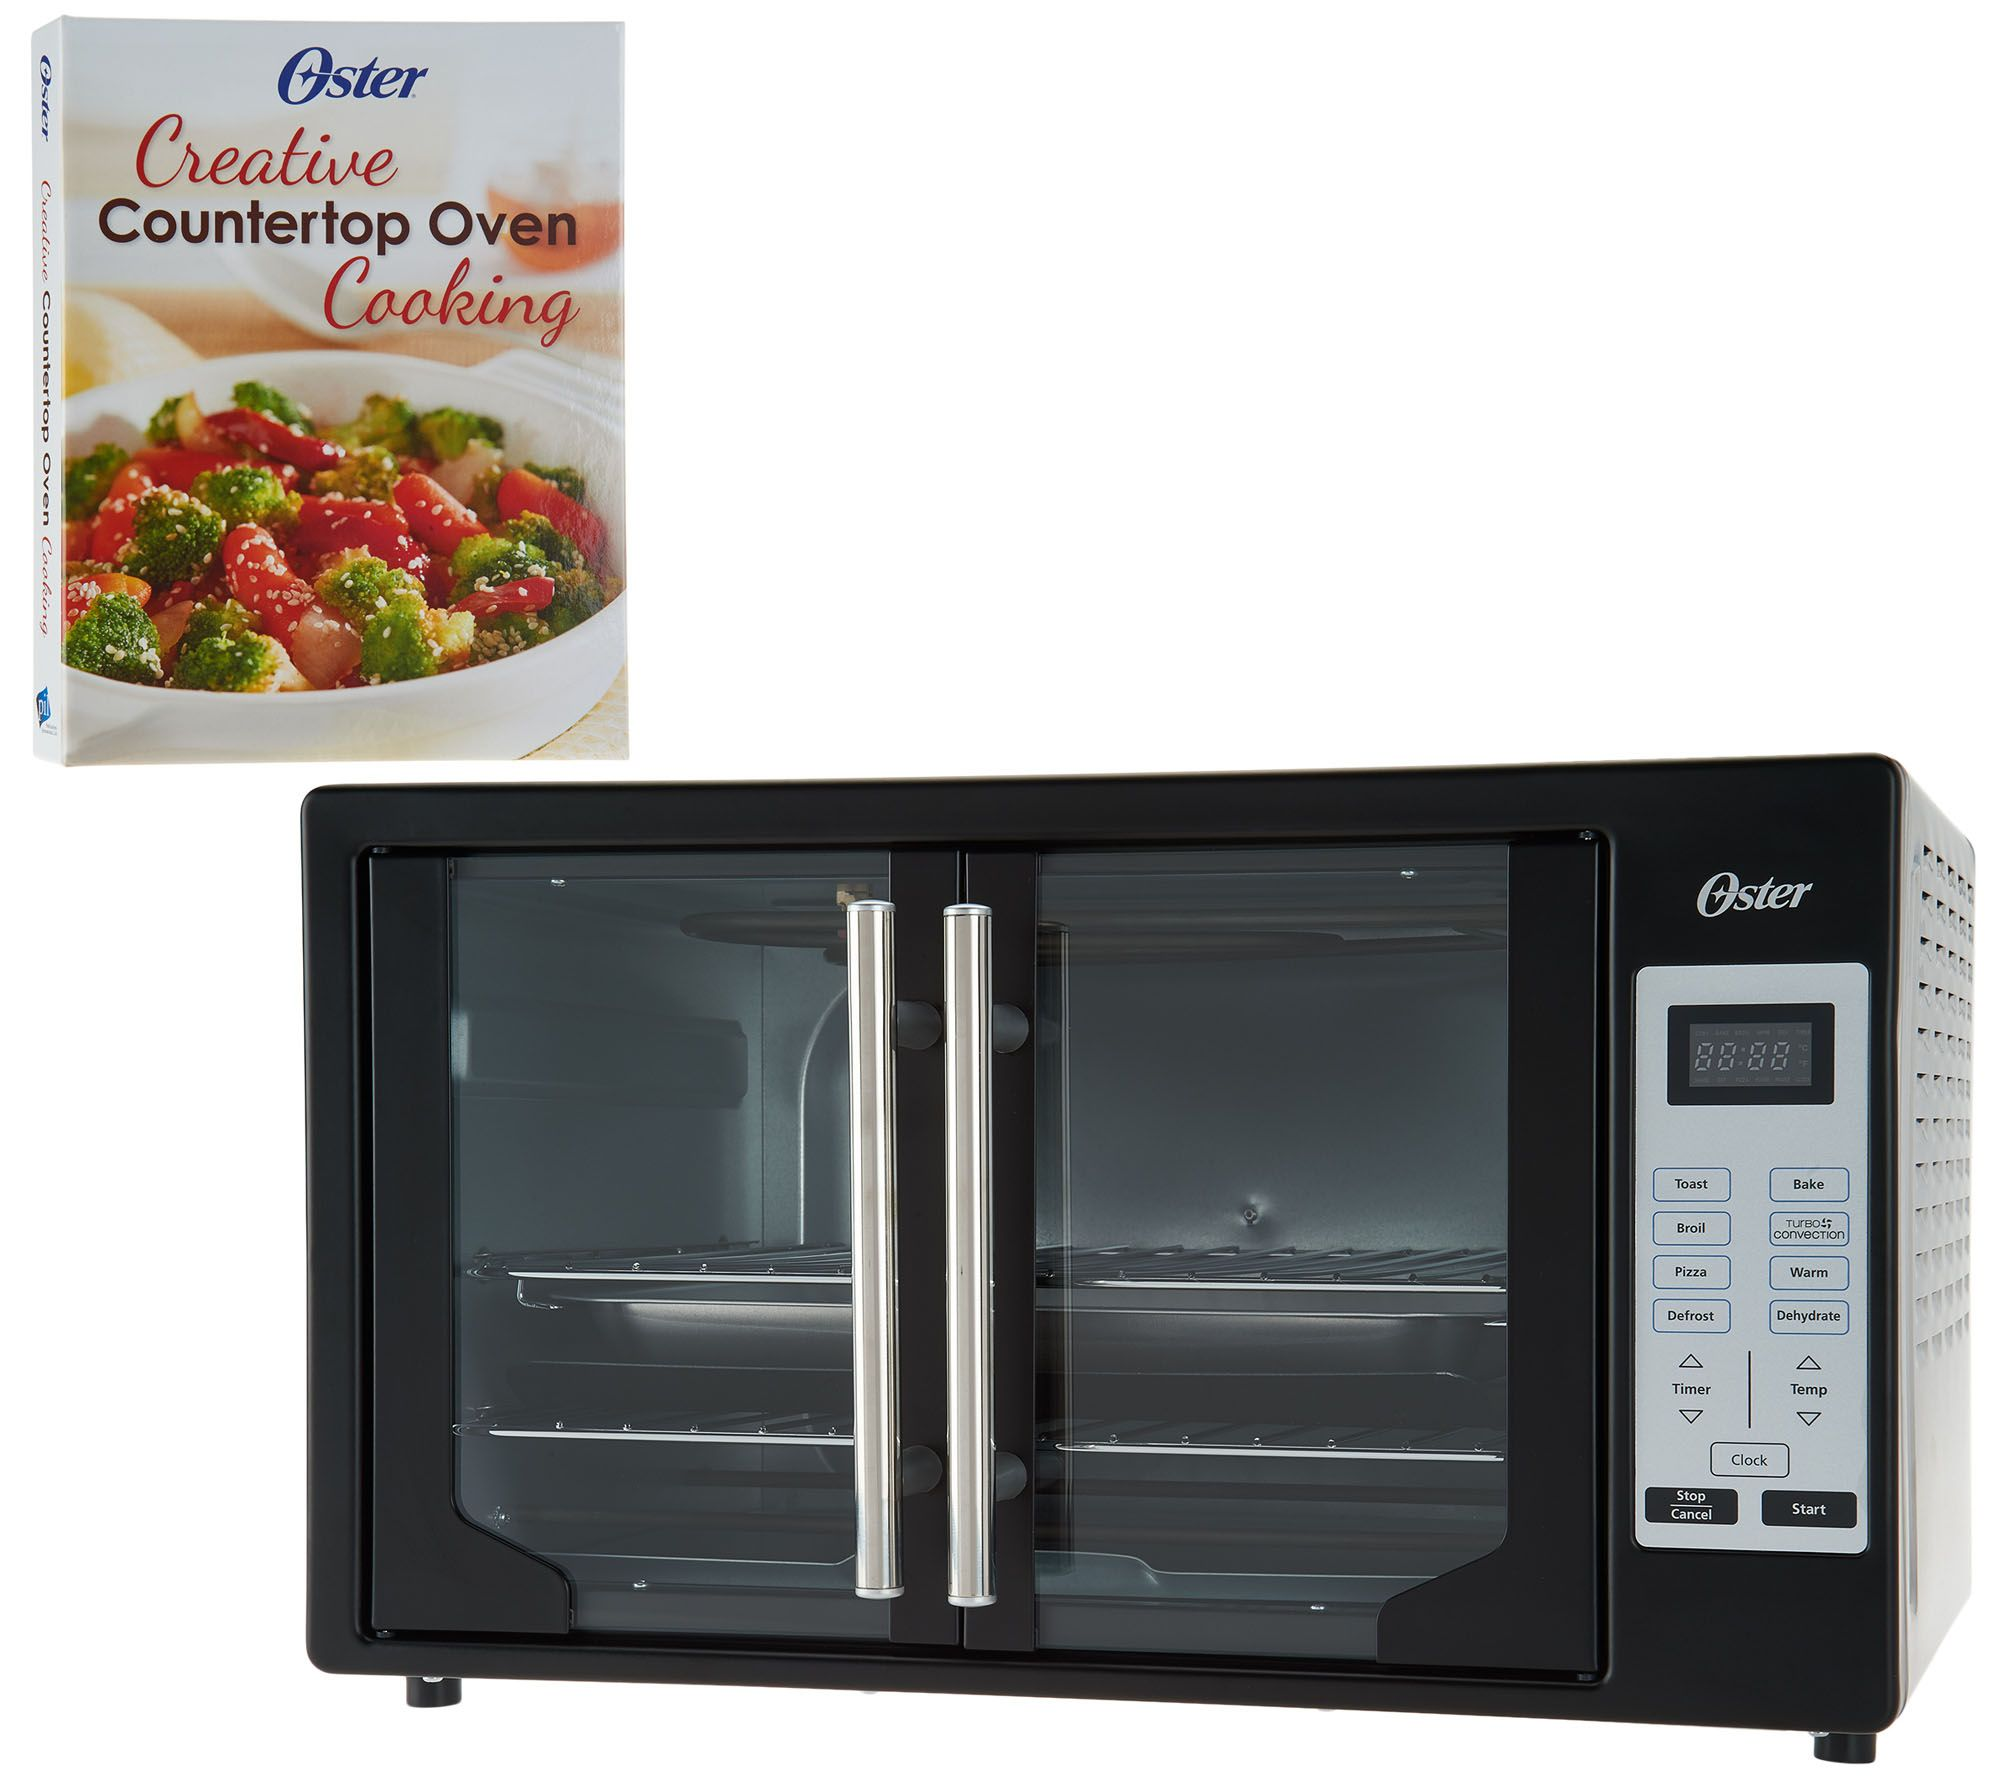 Oster Convection Countertop Oven Reviews Oster Xl Digital Convection Oven W French Doors Recipe Book Qvc